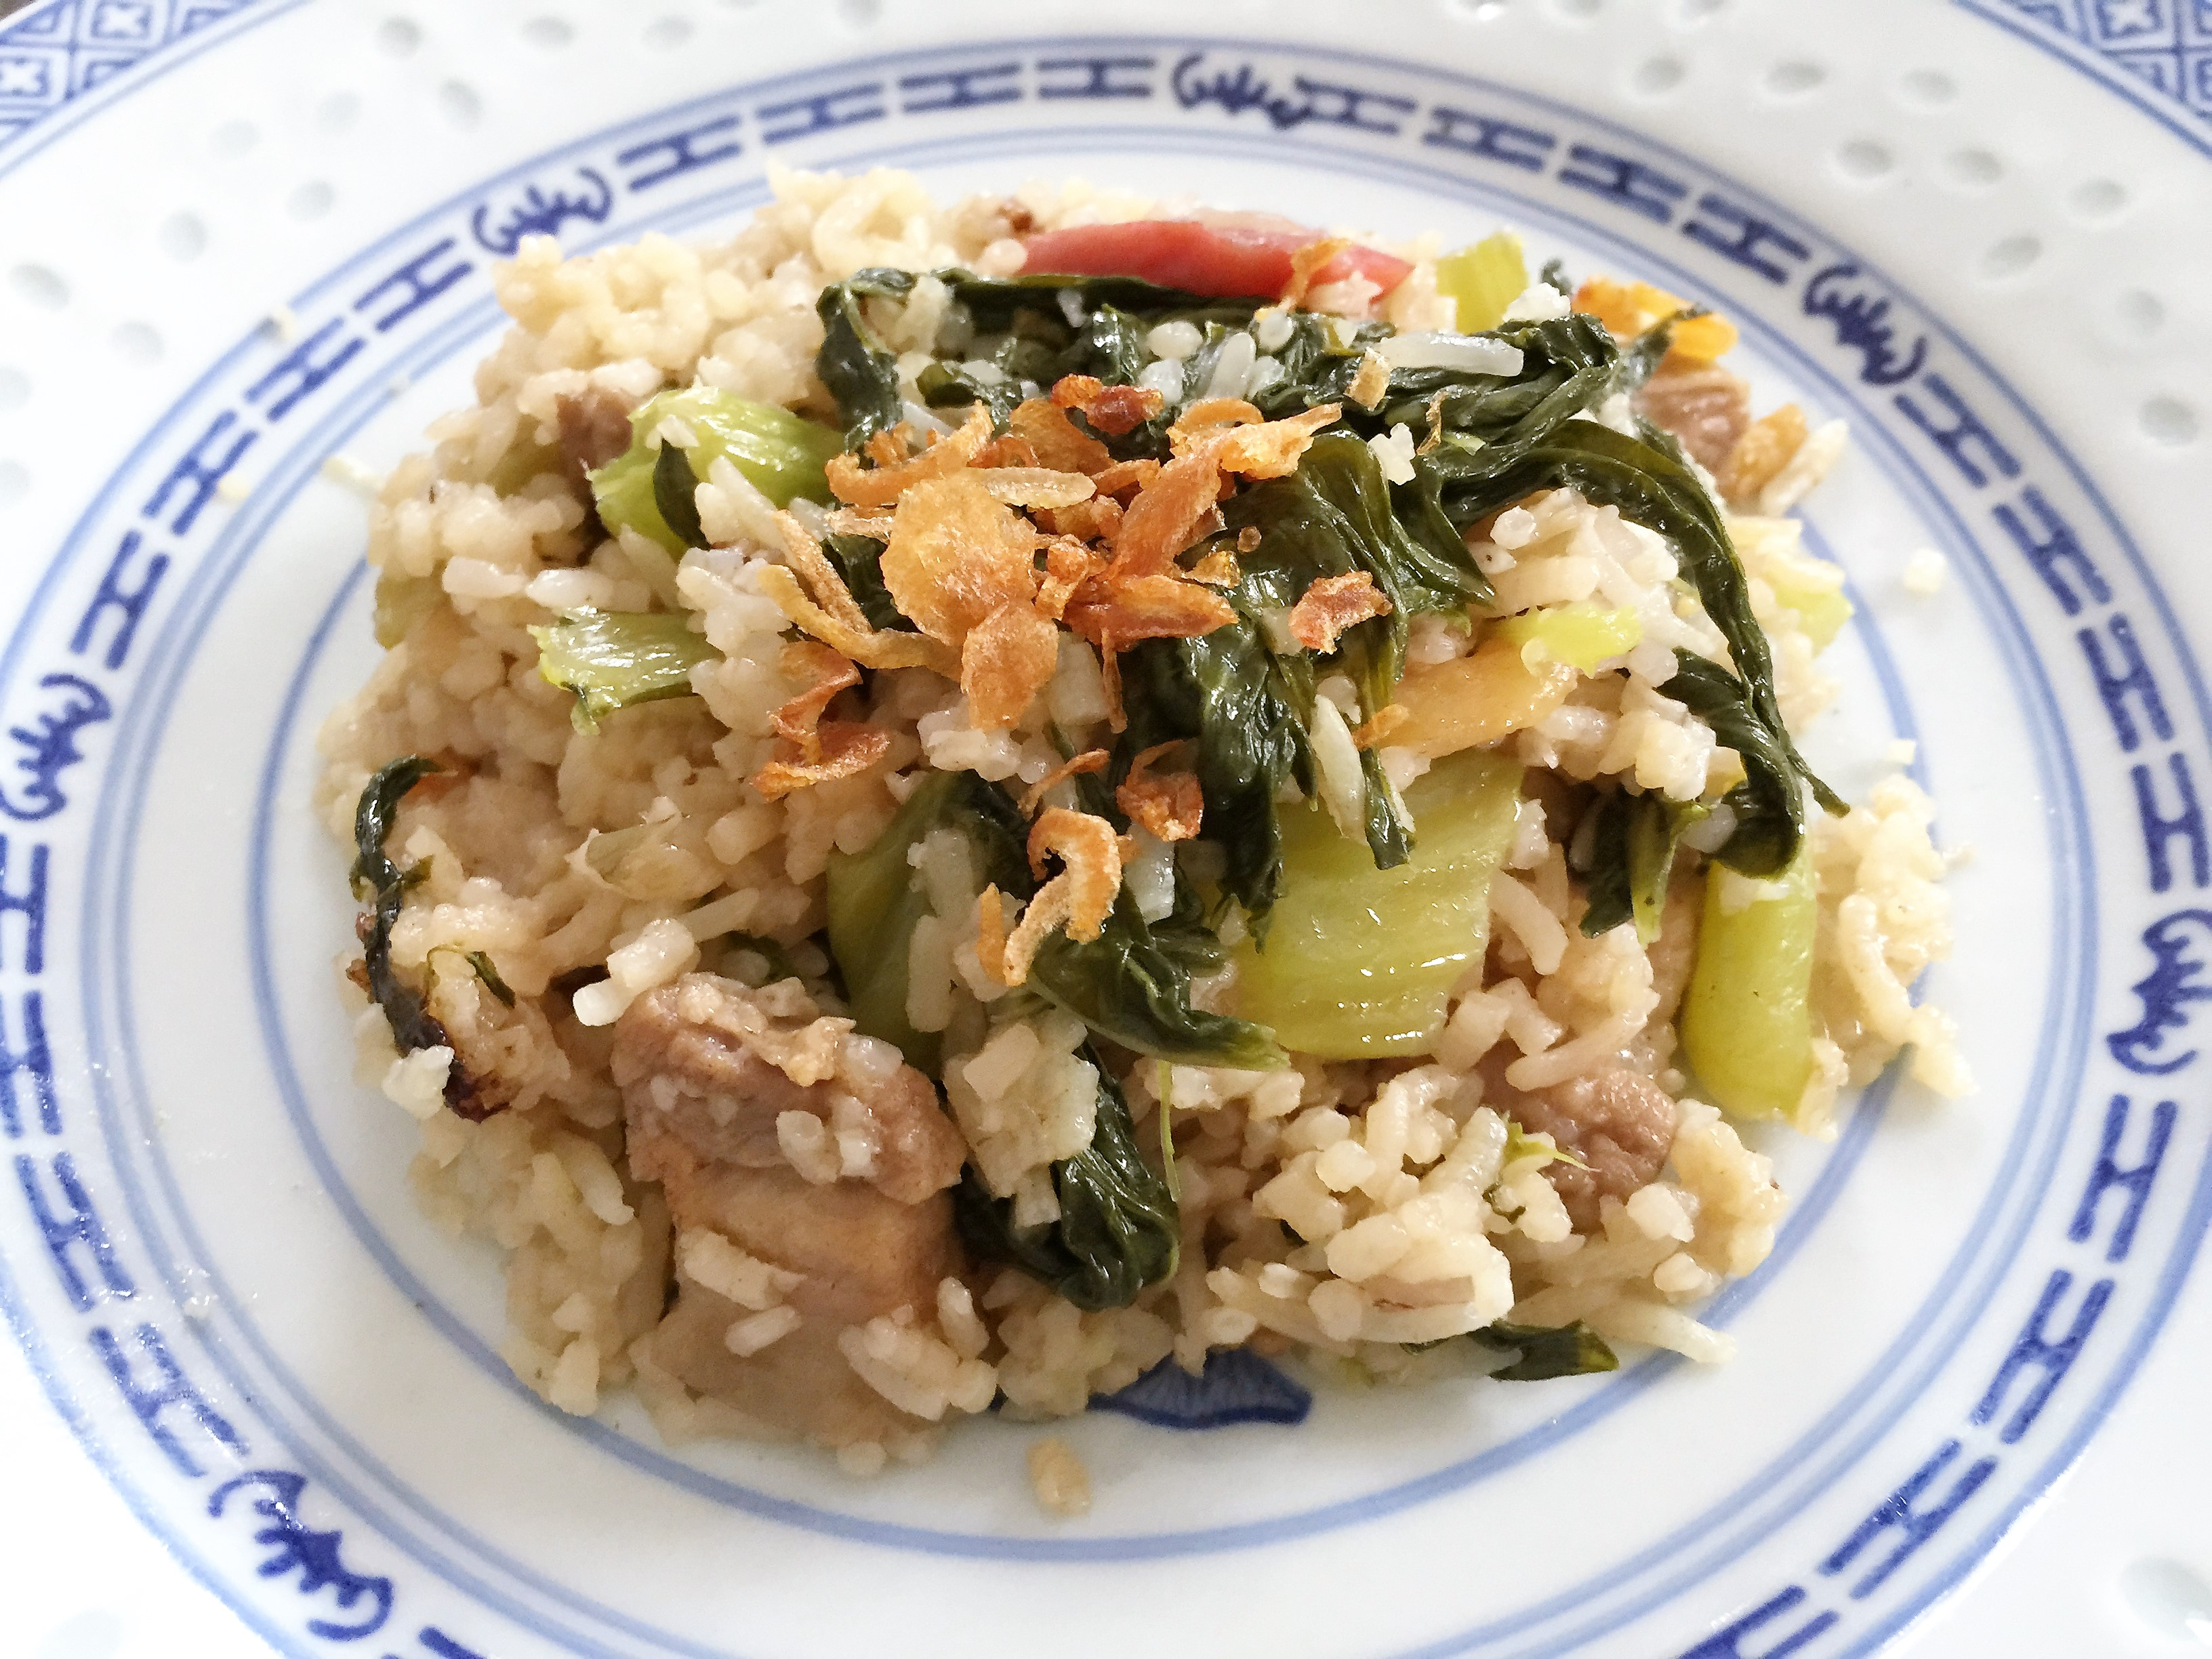 Chinese Mixed Rice with Mustard Greens